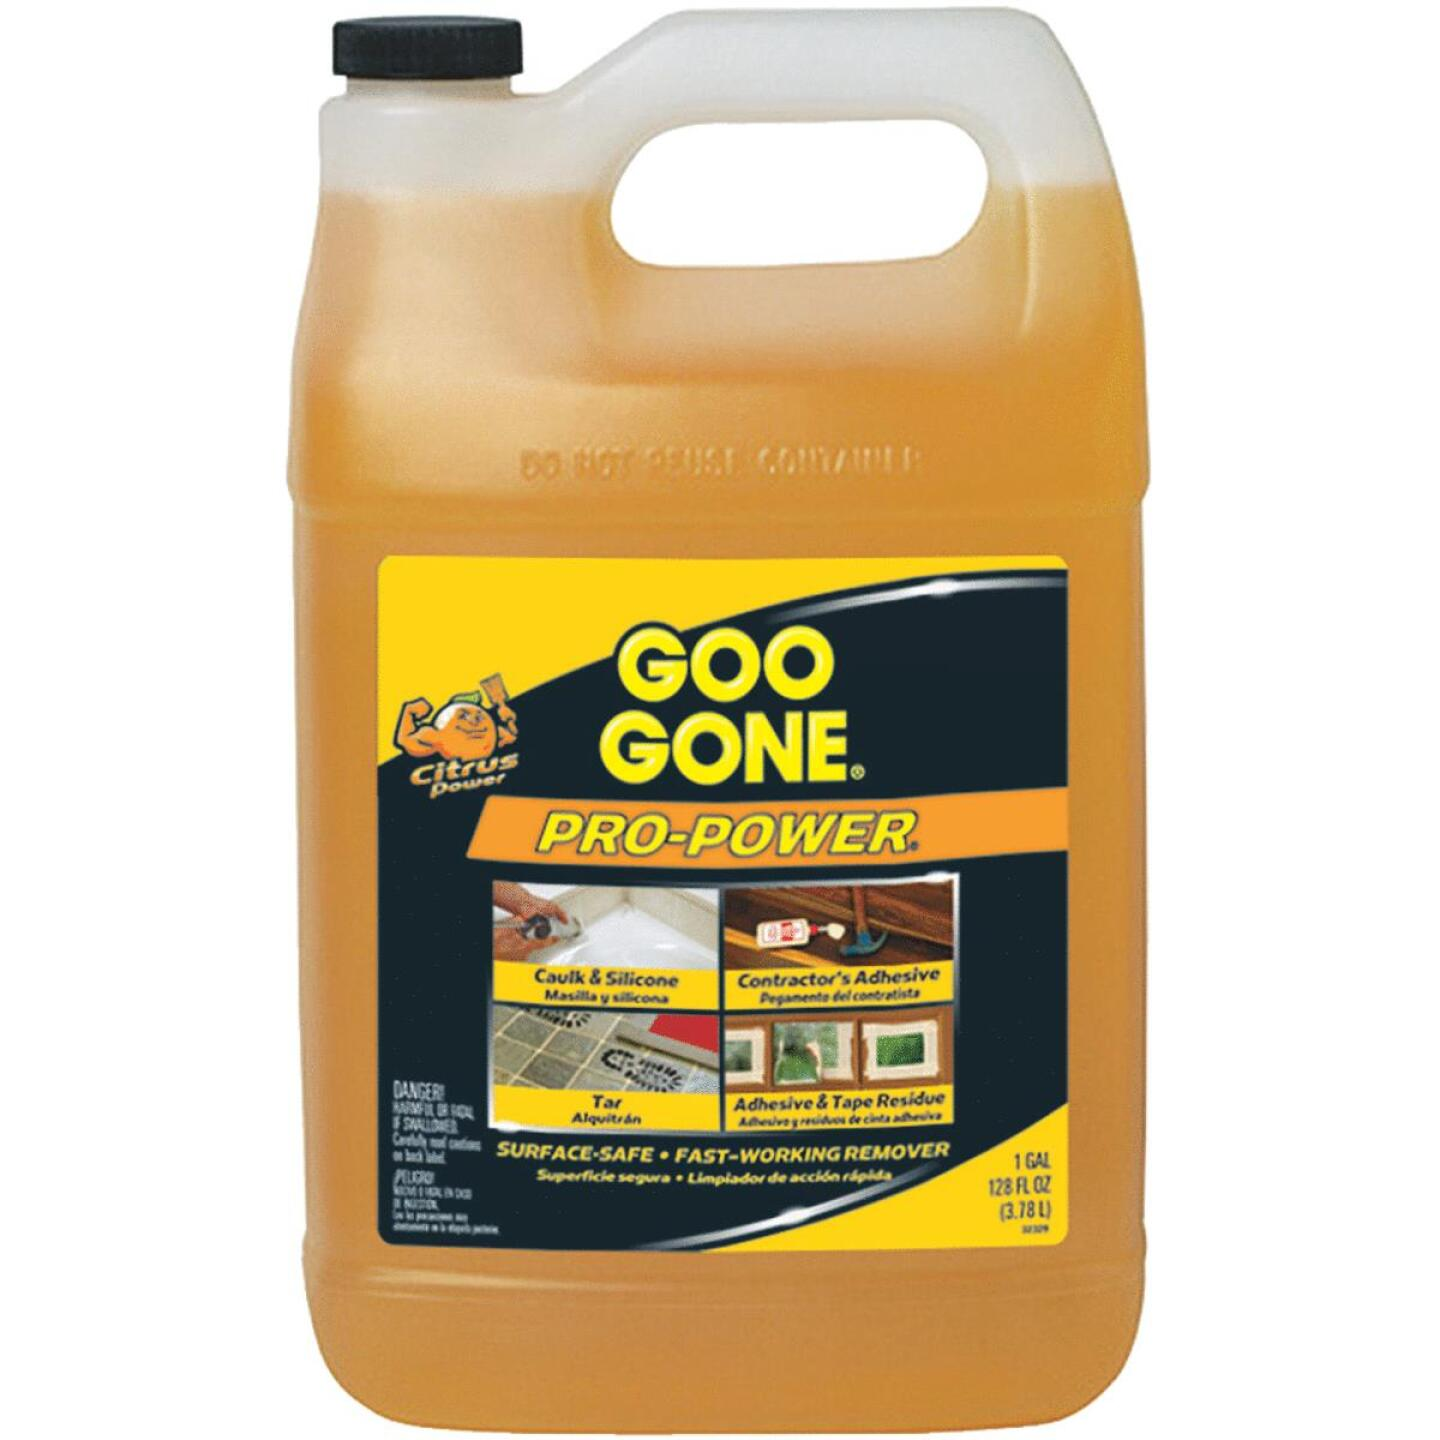 Goo Gone 1 Gal. Pro-Power Adhesive Remover Image 172